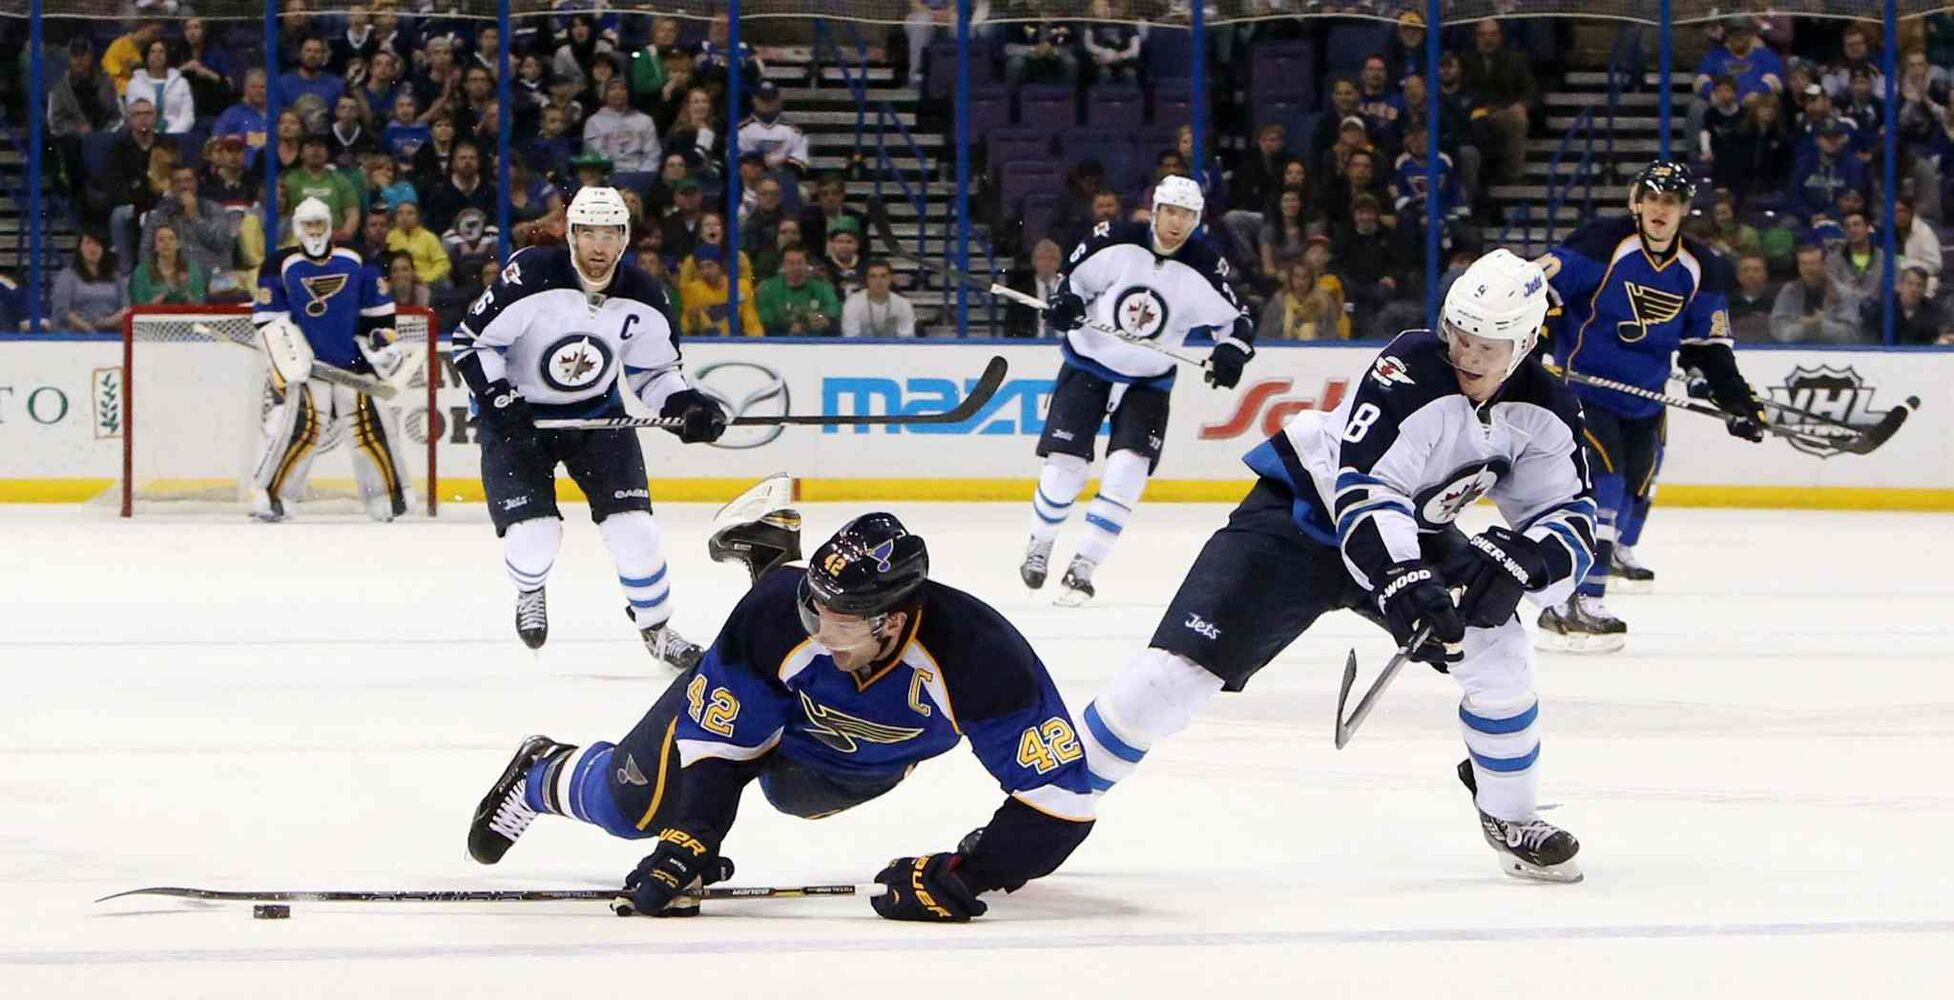 Blues centre David Backes is awarded an empty-net goal after being taken down by Jets defenceman Jacob Trouba in the third period. (CHRIS LEE / ST LOUIS DISPATCH/AP)